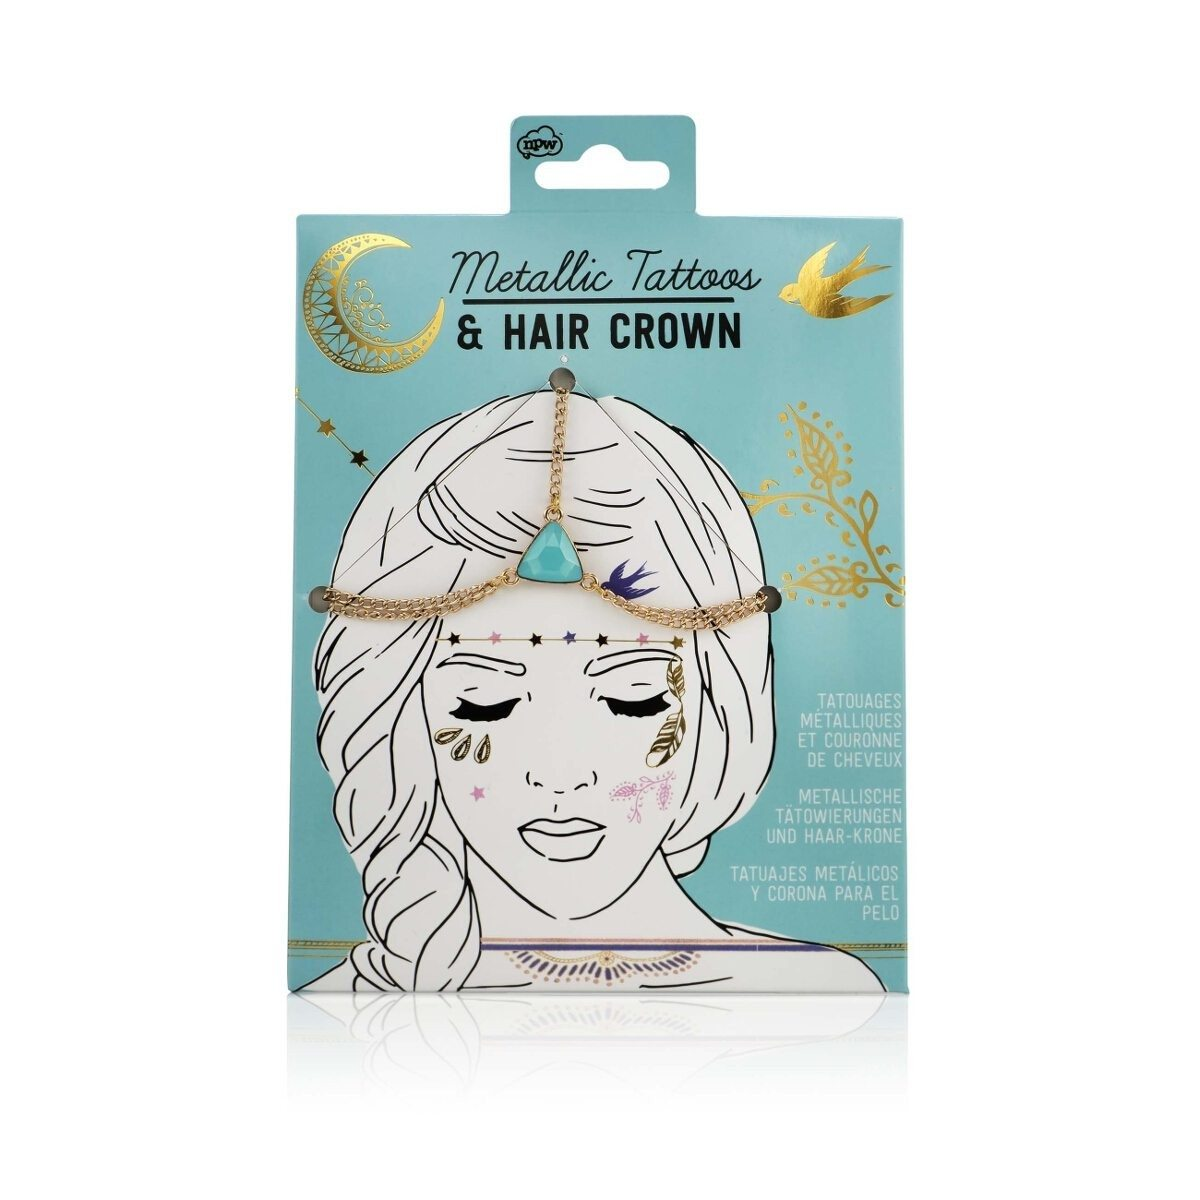 Metallic Tattoos & Haarkrone – Fashion Set - Vollansicht